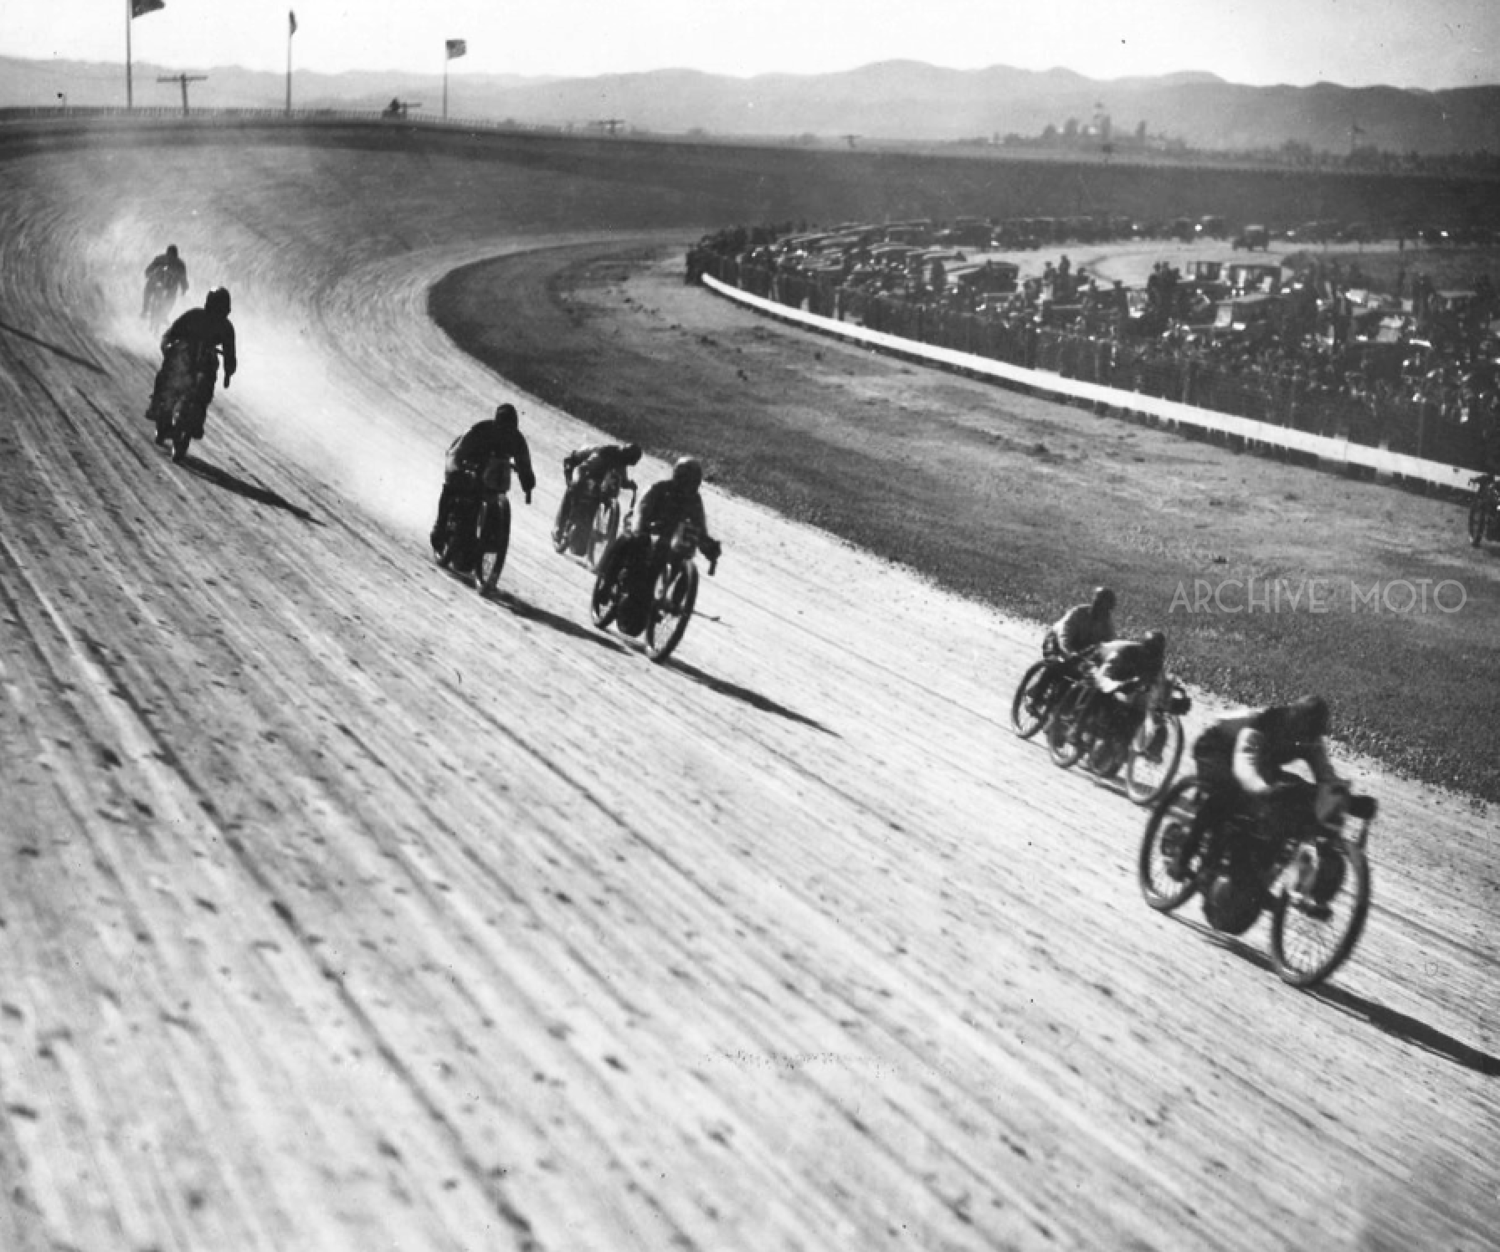 A Brief History of Speed: Part IV — Archive Moto